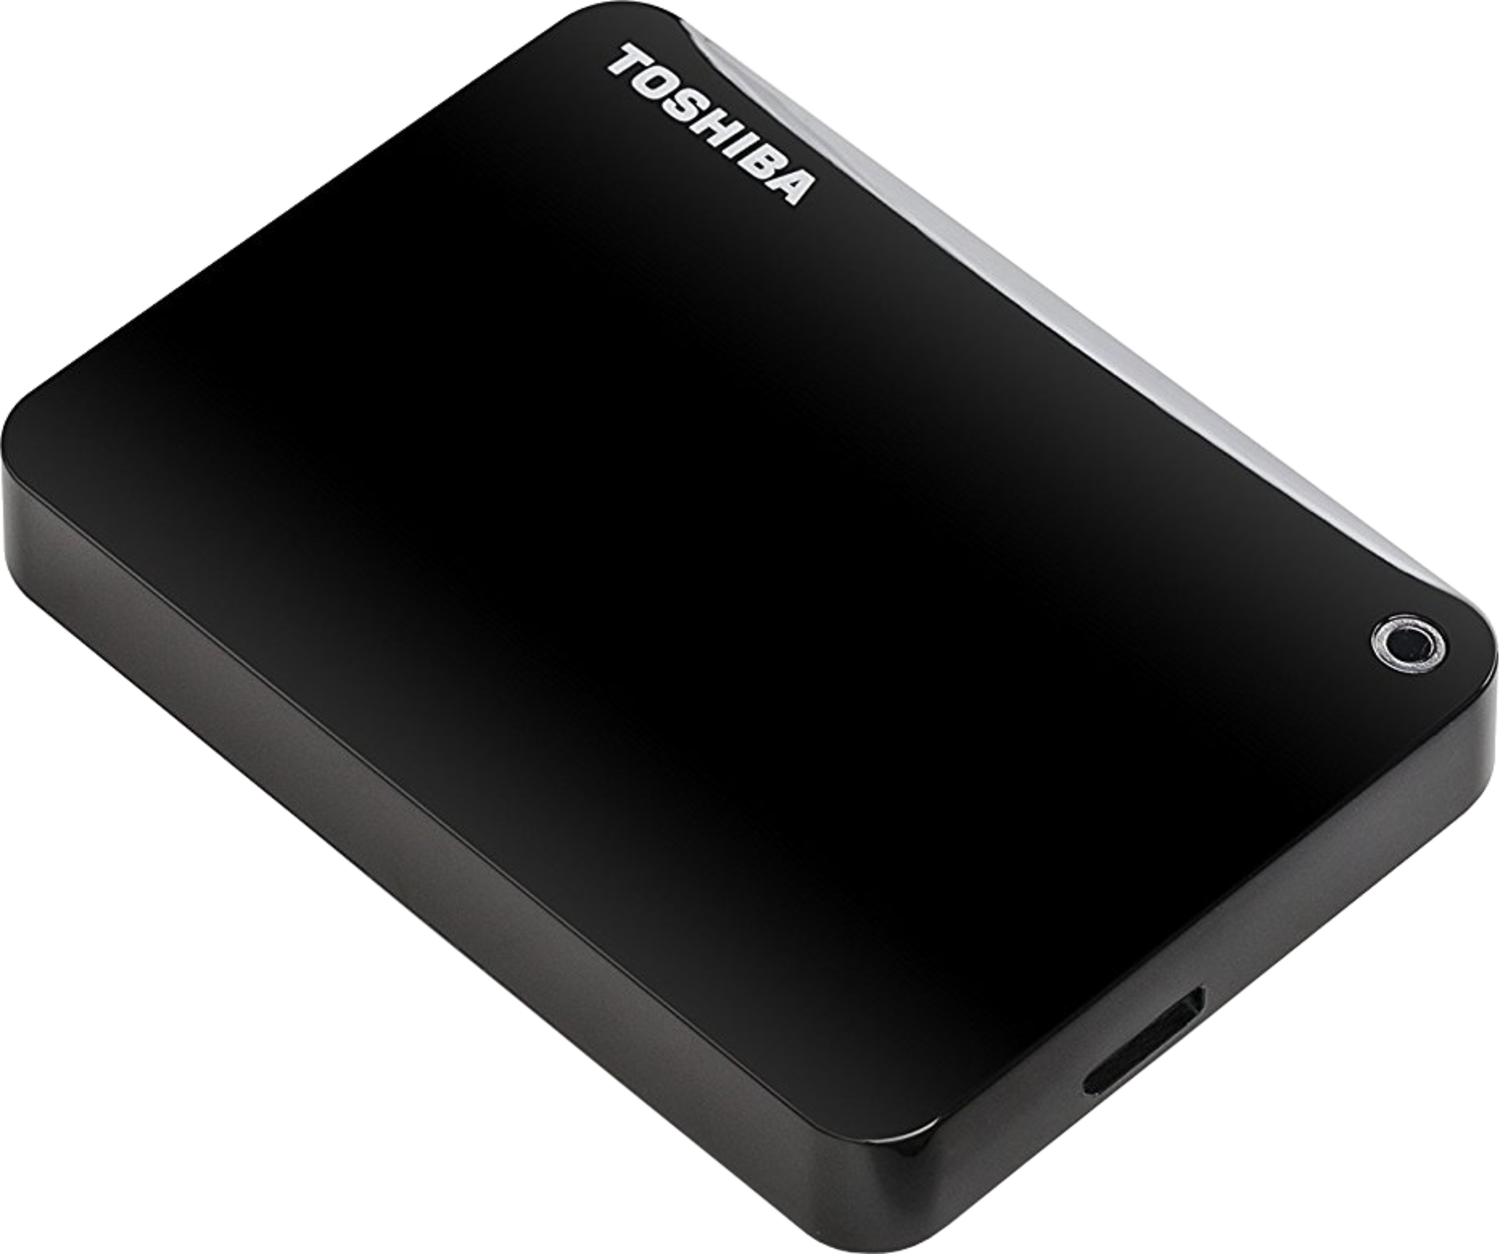 Toshiba Canvio Connect II Portable Hard Drive.png